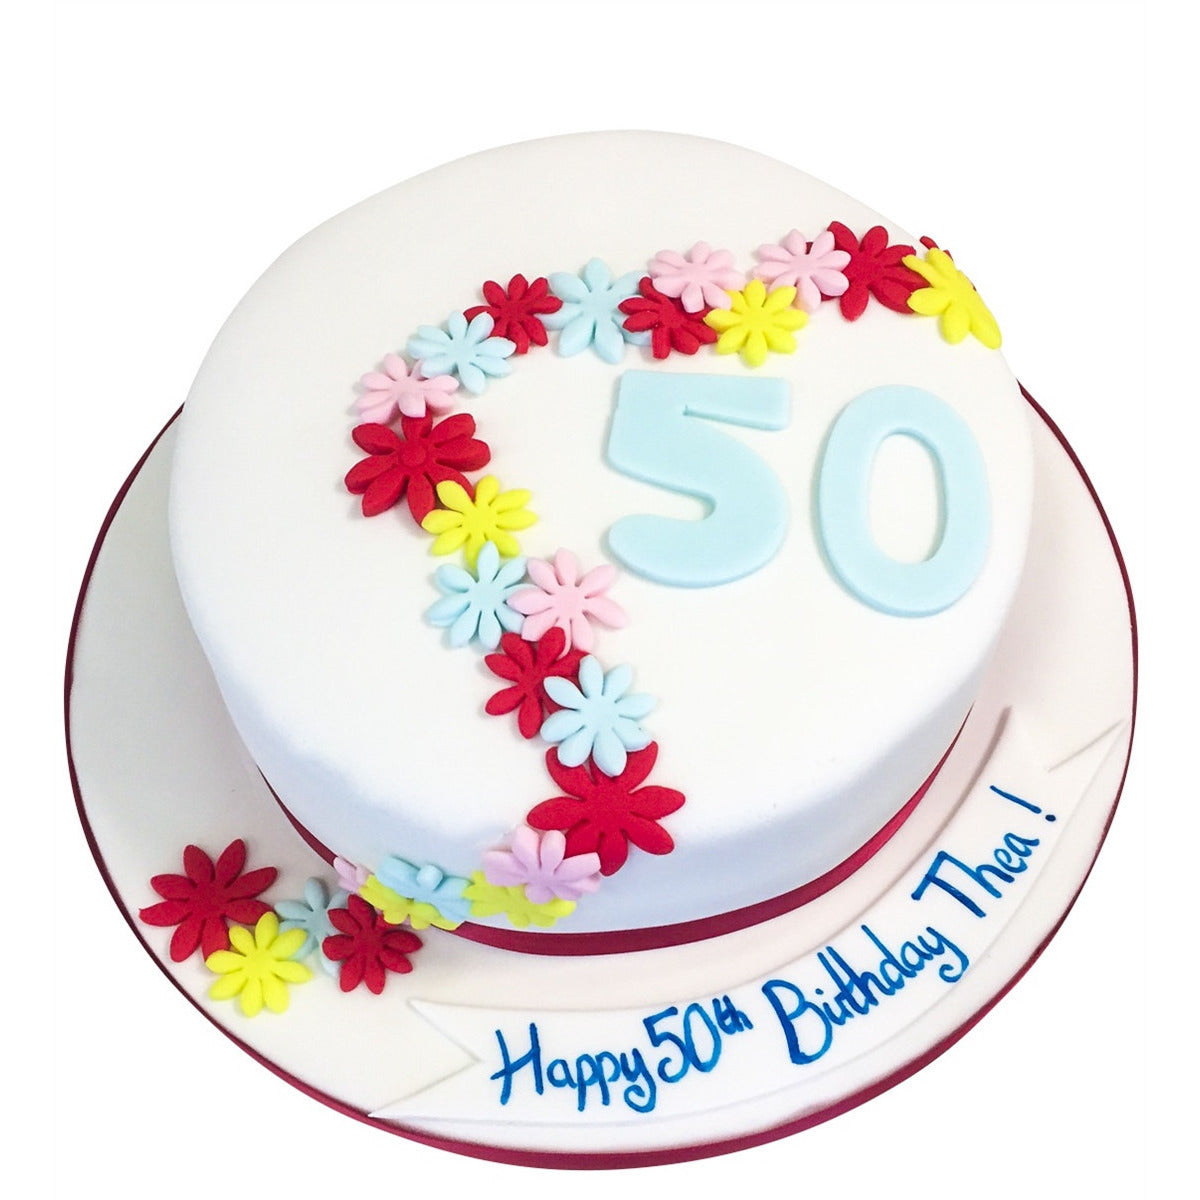 Stupendous 50Th Birthday Cake Buy Online Free Uk Delivery New Cakes Funny Birthday Cards Online Aeocydamsfinfo